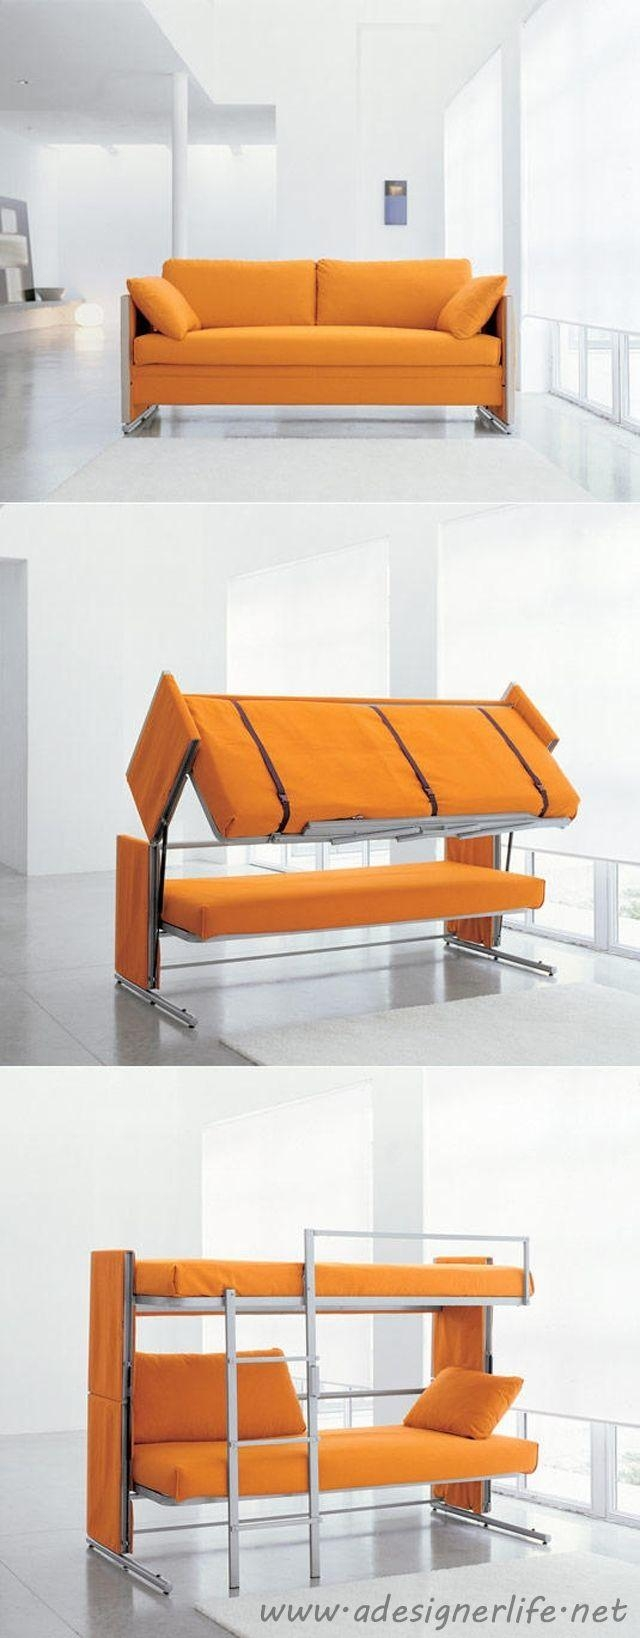 Bunk Beds : Fold Out Couch Bunk Bed Couch Converts To Bunk Beds In Sofas Converts To Bunk Bed (Image 5 of 20)